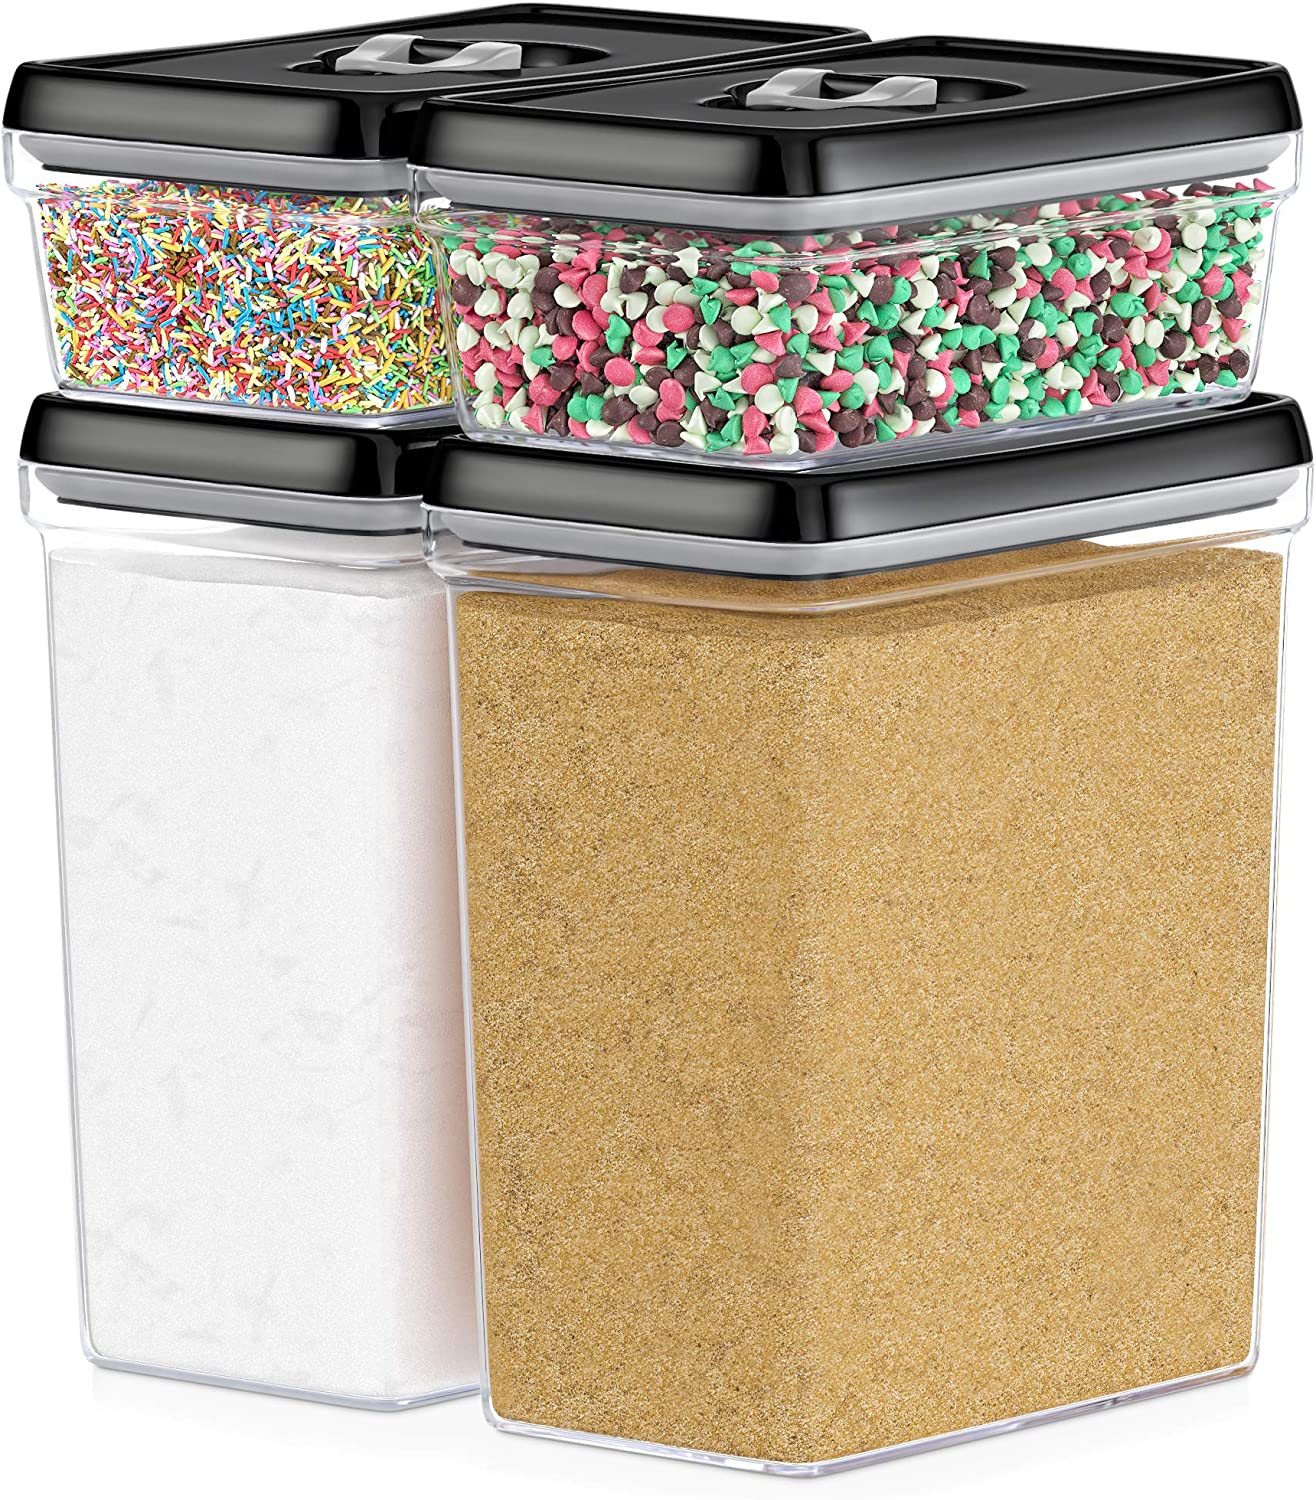 DWËLLZA KITCHEN Large Airtight Food Storage Containers - Bulk Food Pantry & Kitchen Storage Containers for Sugar, Flour and Baking Supplies - 4 PC Set, Clear Plastic BPA-Free, Keeps Fresh & Dry